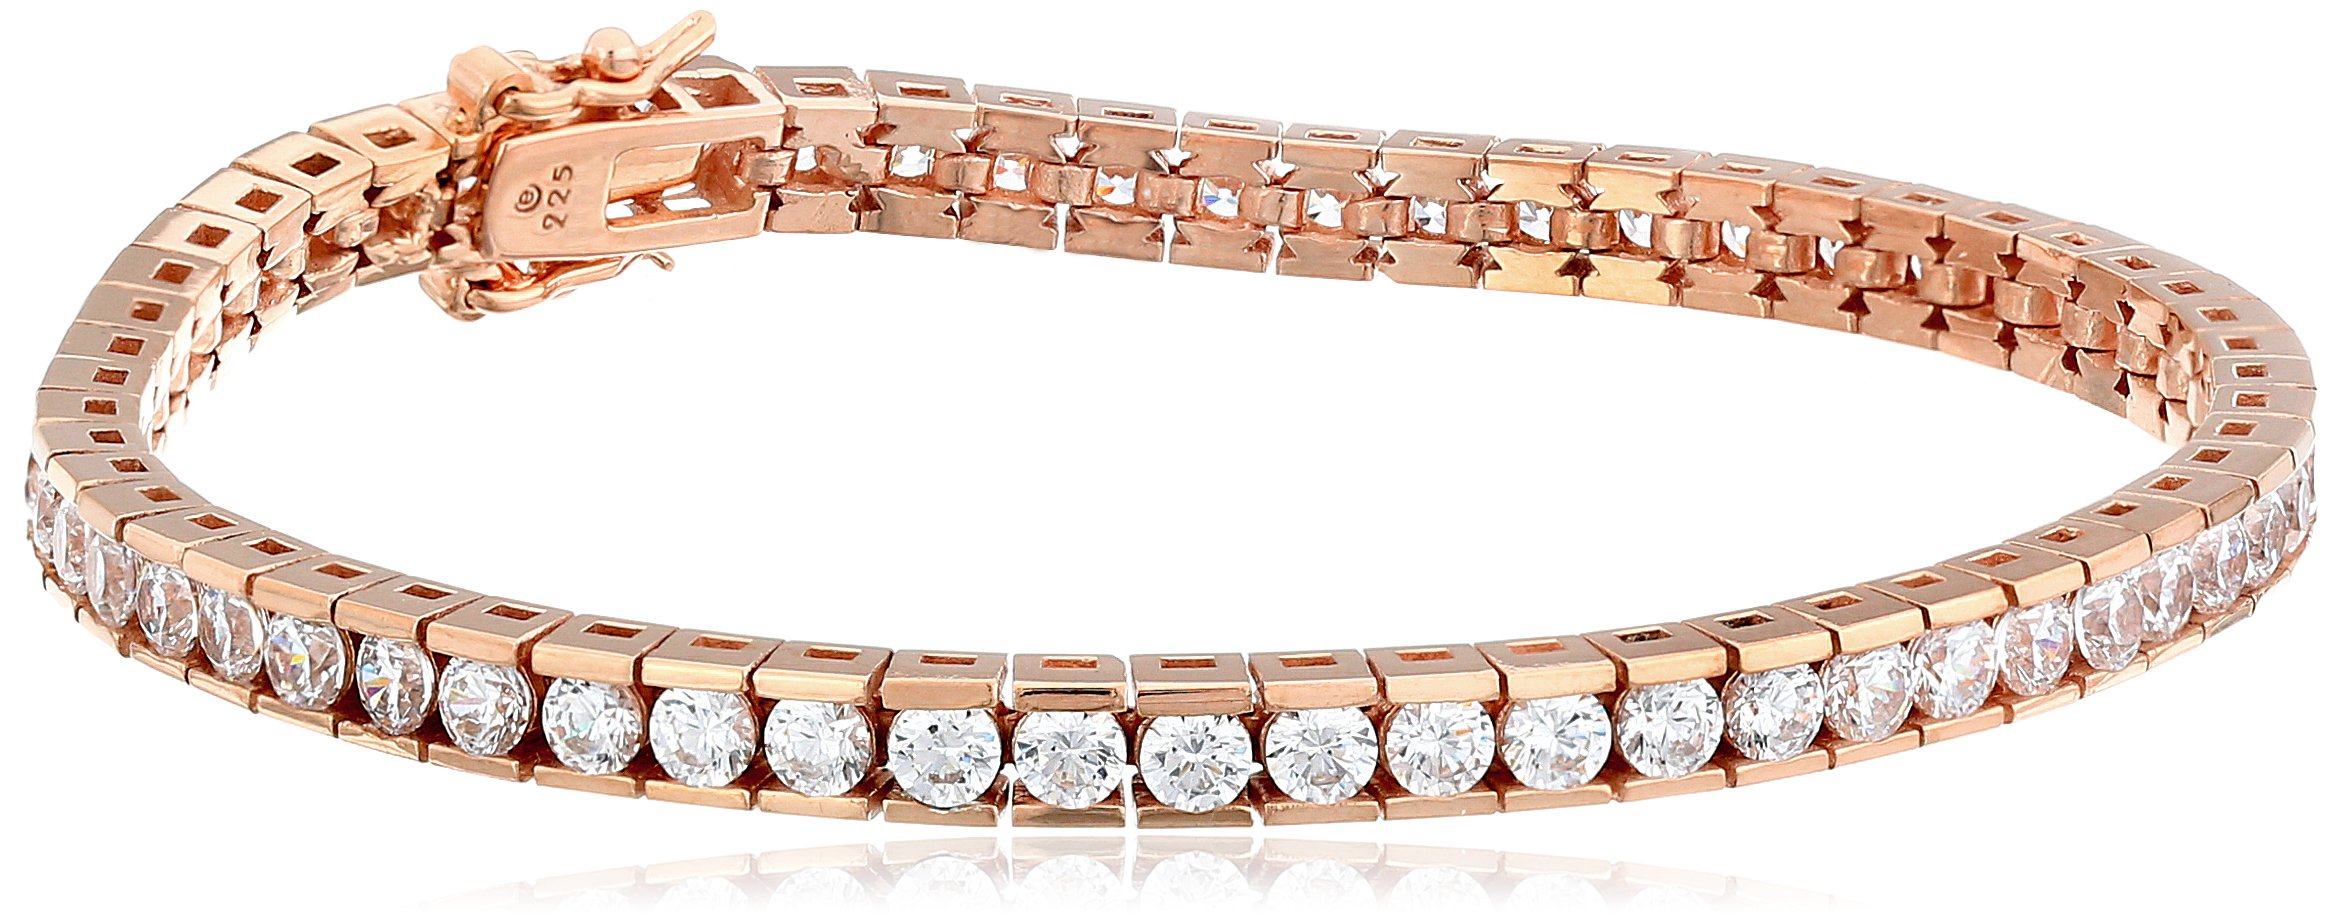 Rose-gold-plated Sterling Silver Swarovski Zirconia Round Tennis Bracelet, 7.25'' by Amazon Collection